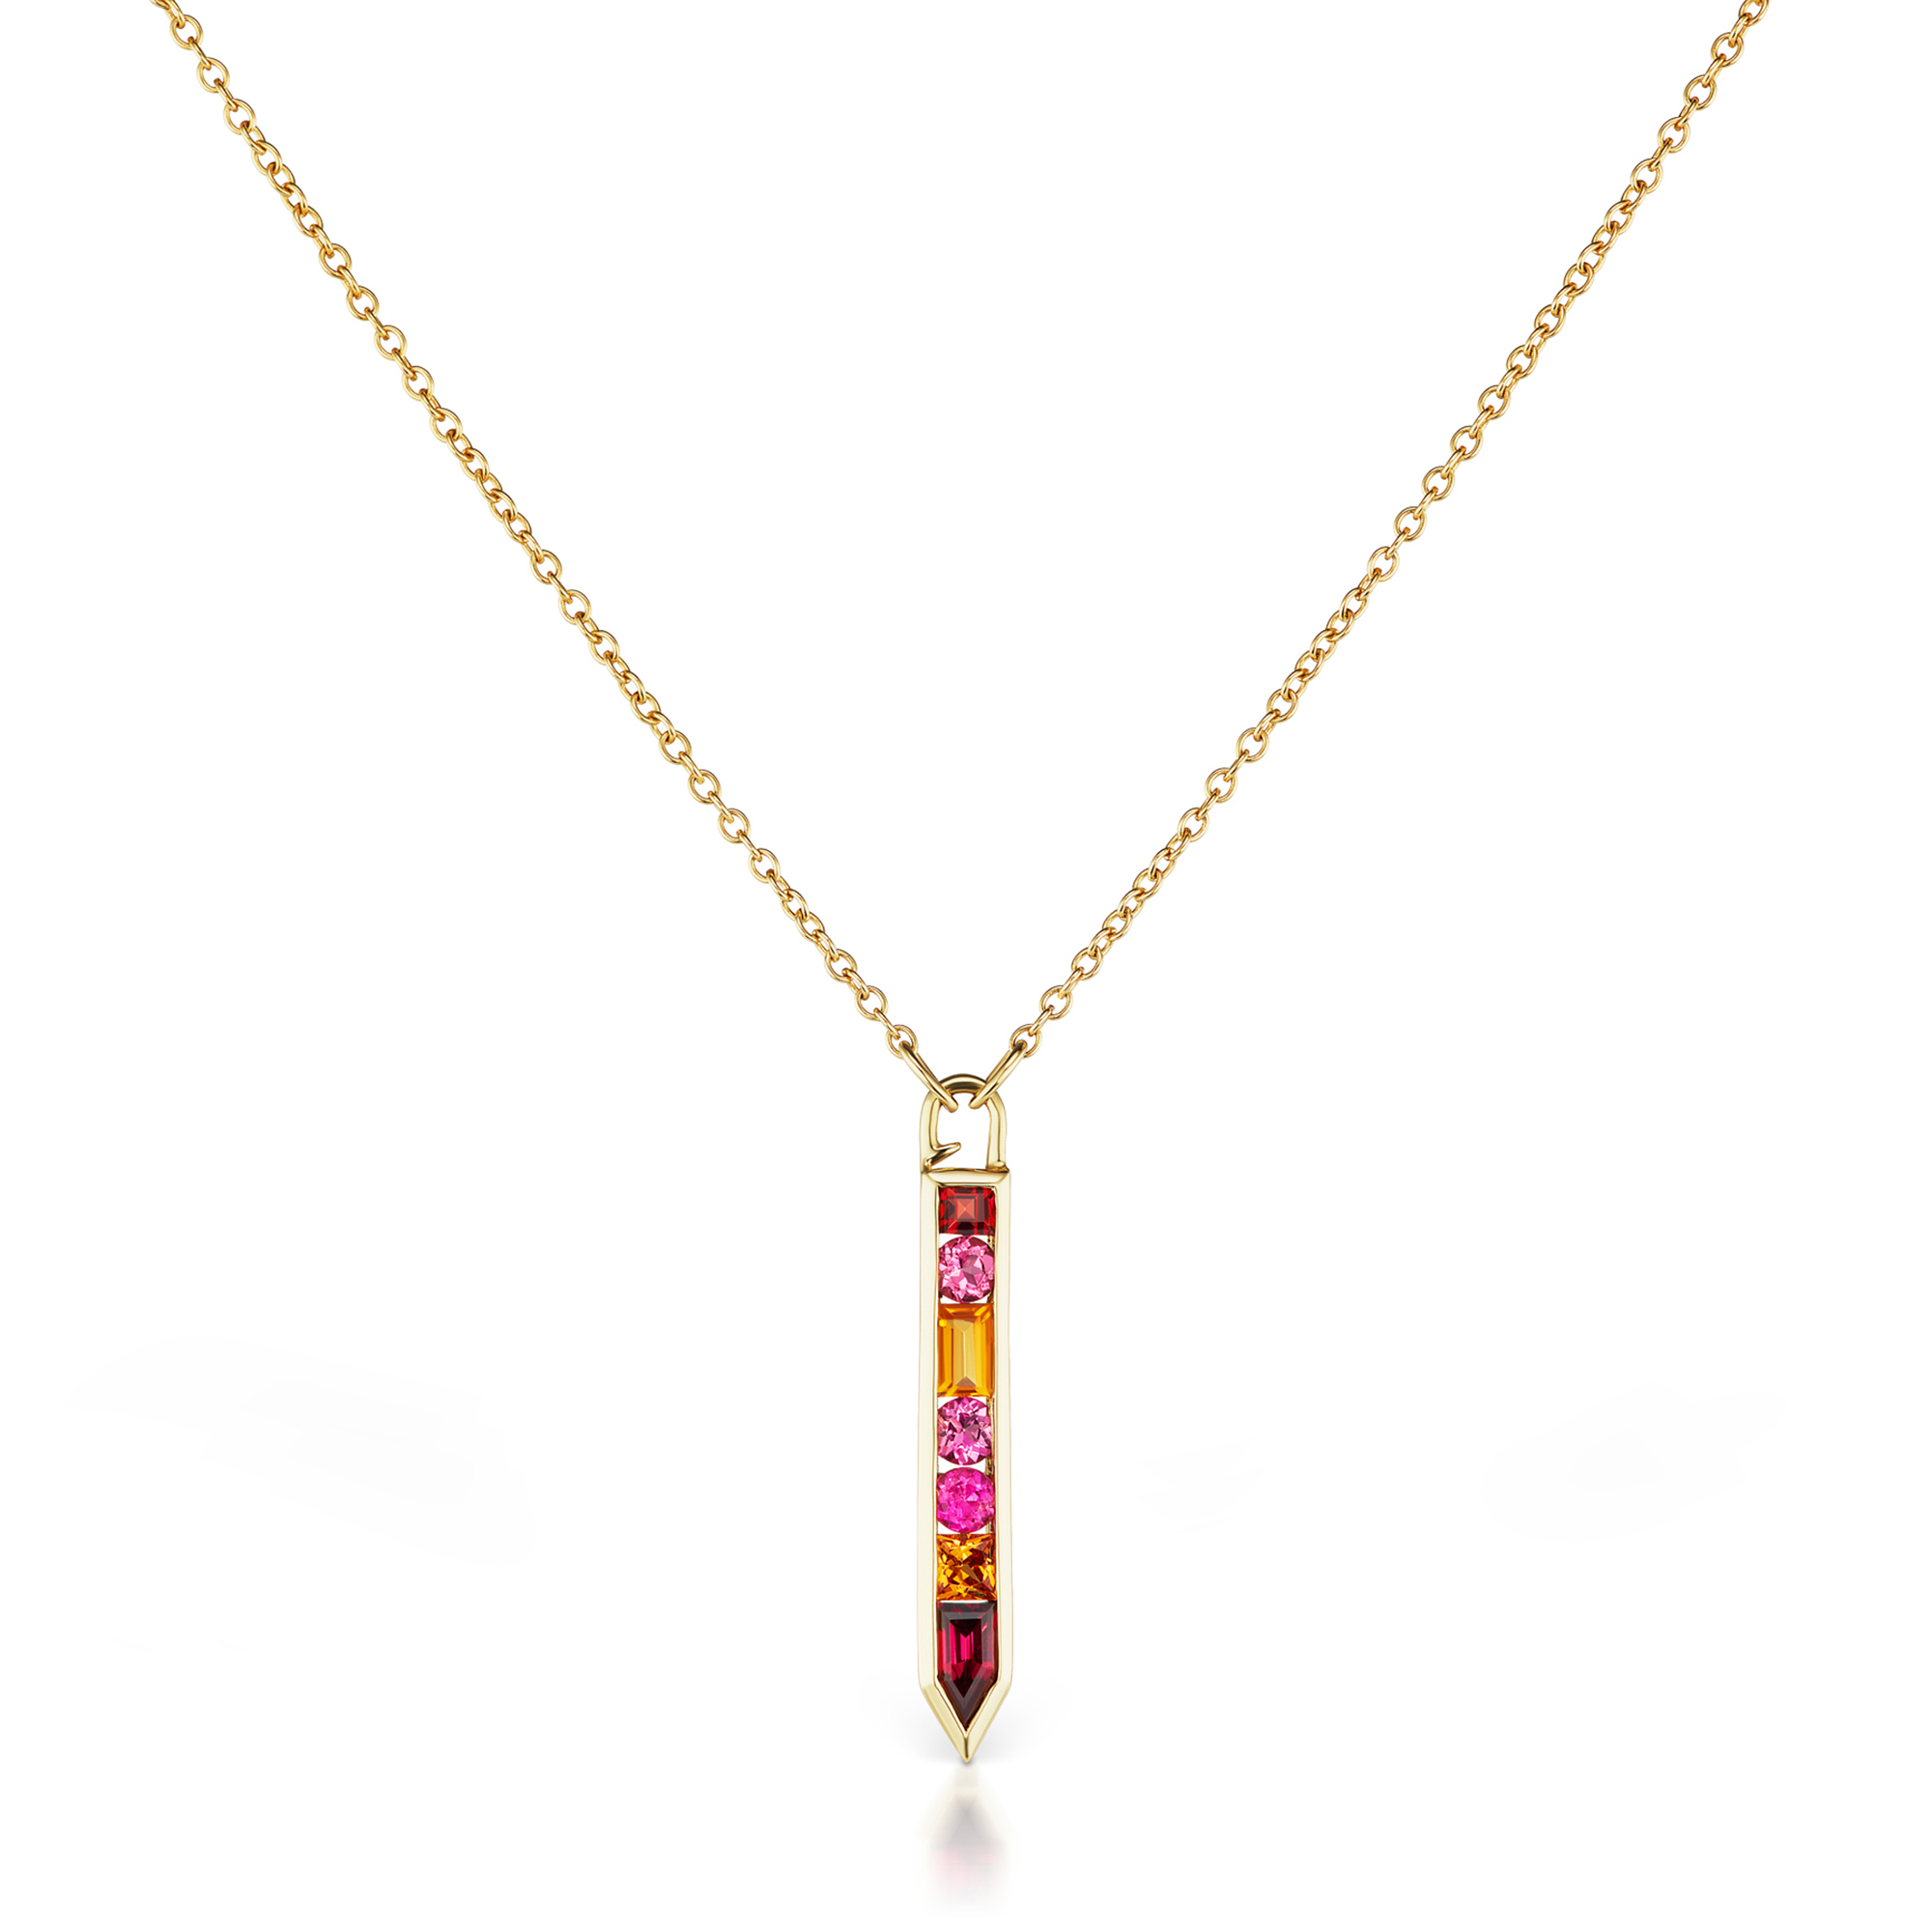 Jane Taylor Garnet, Tourmaline & Citrine Cirque Vertical Arrow Necklace